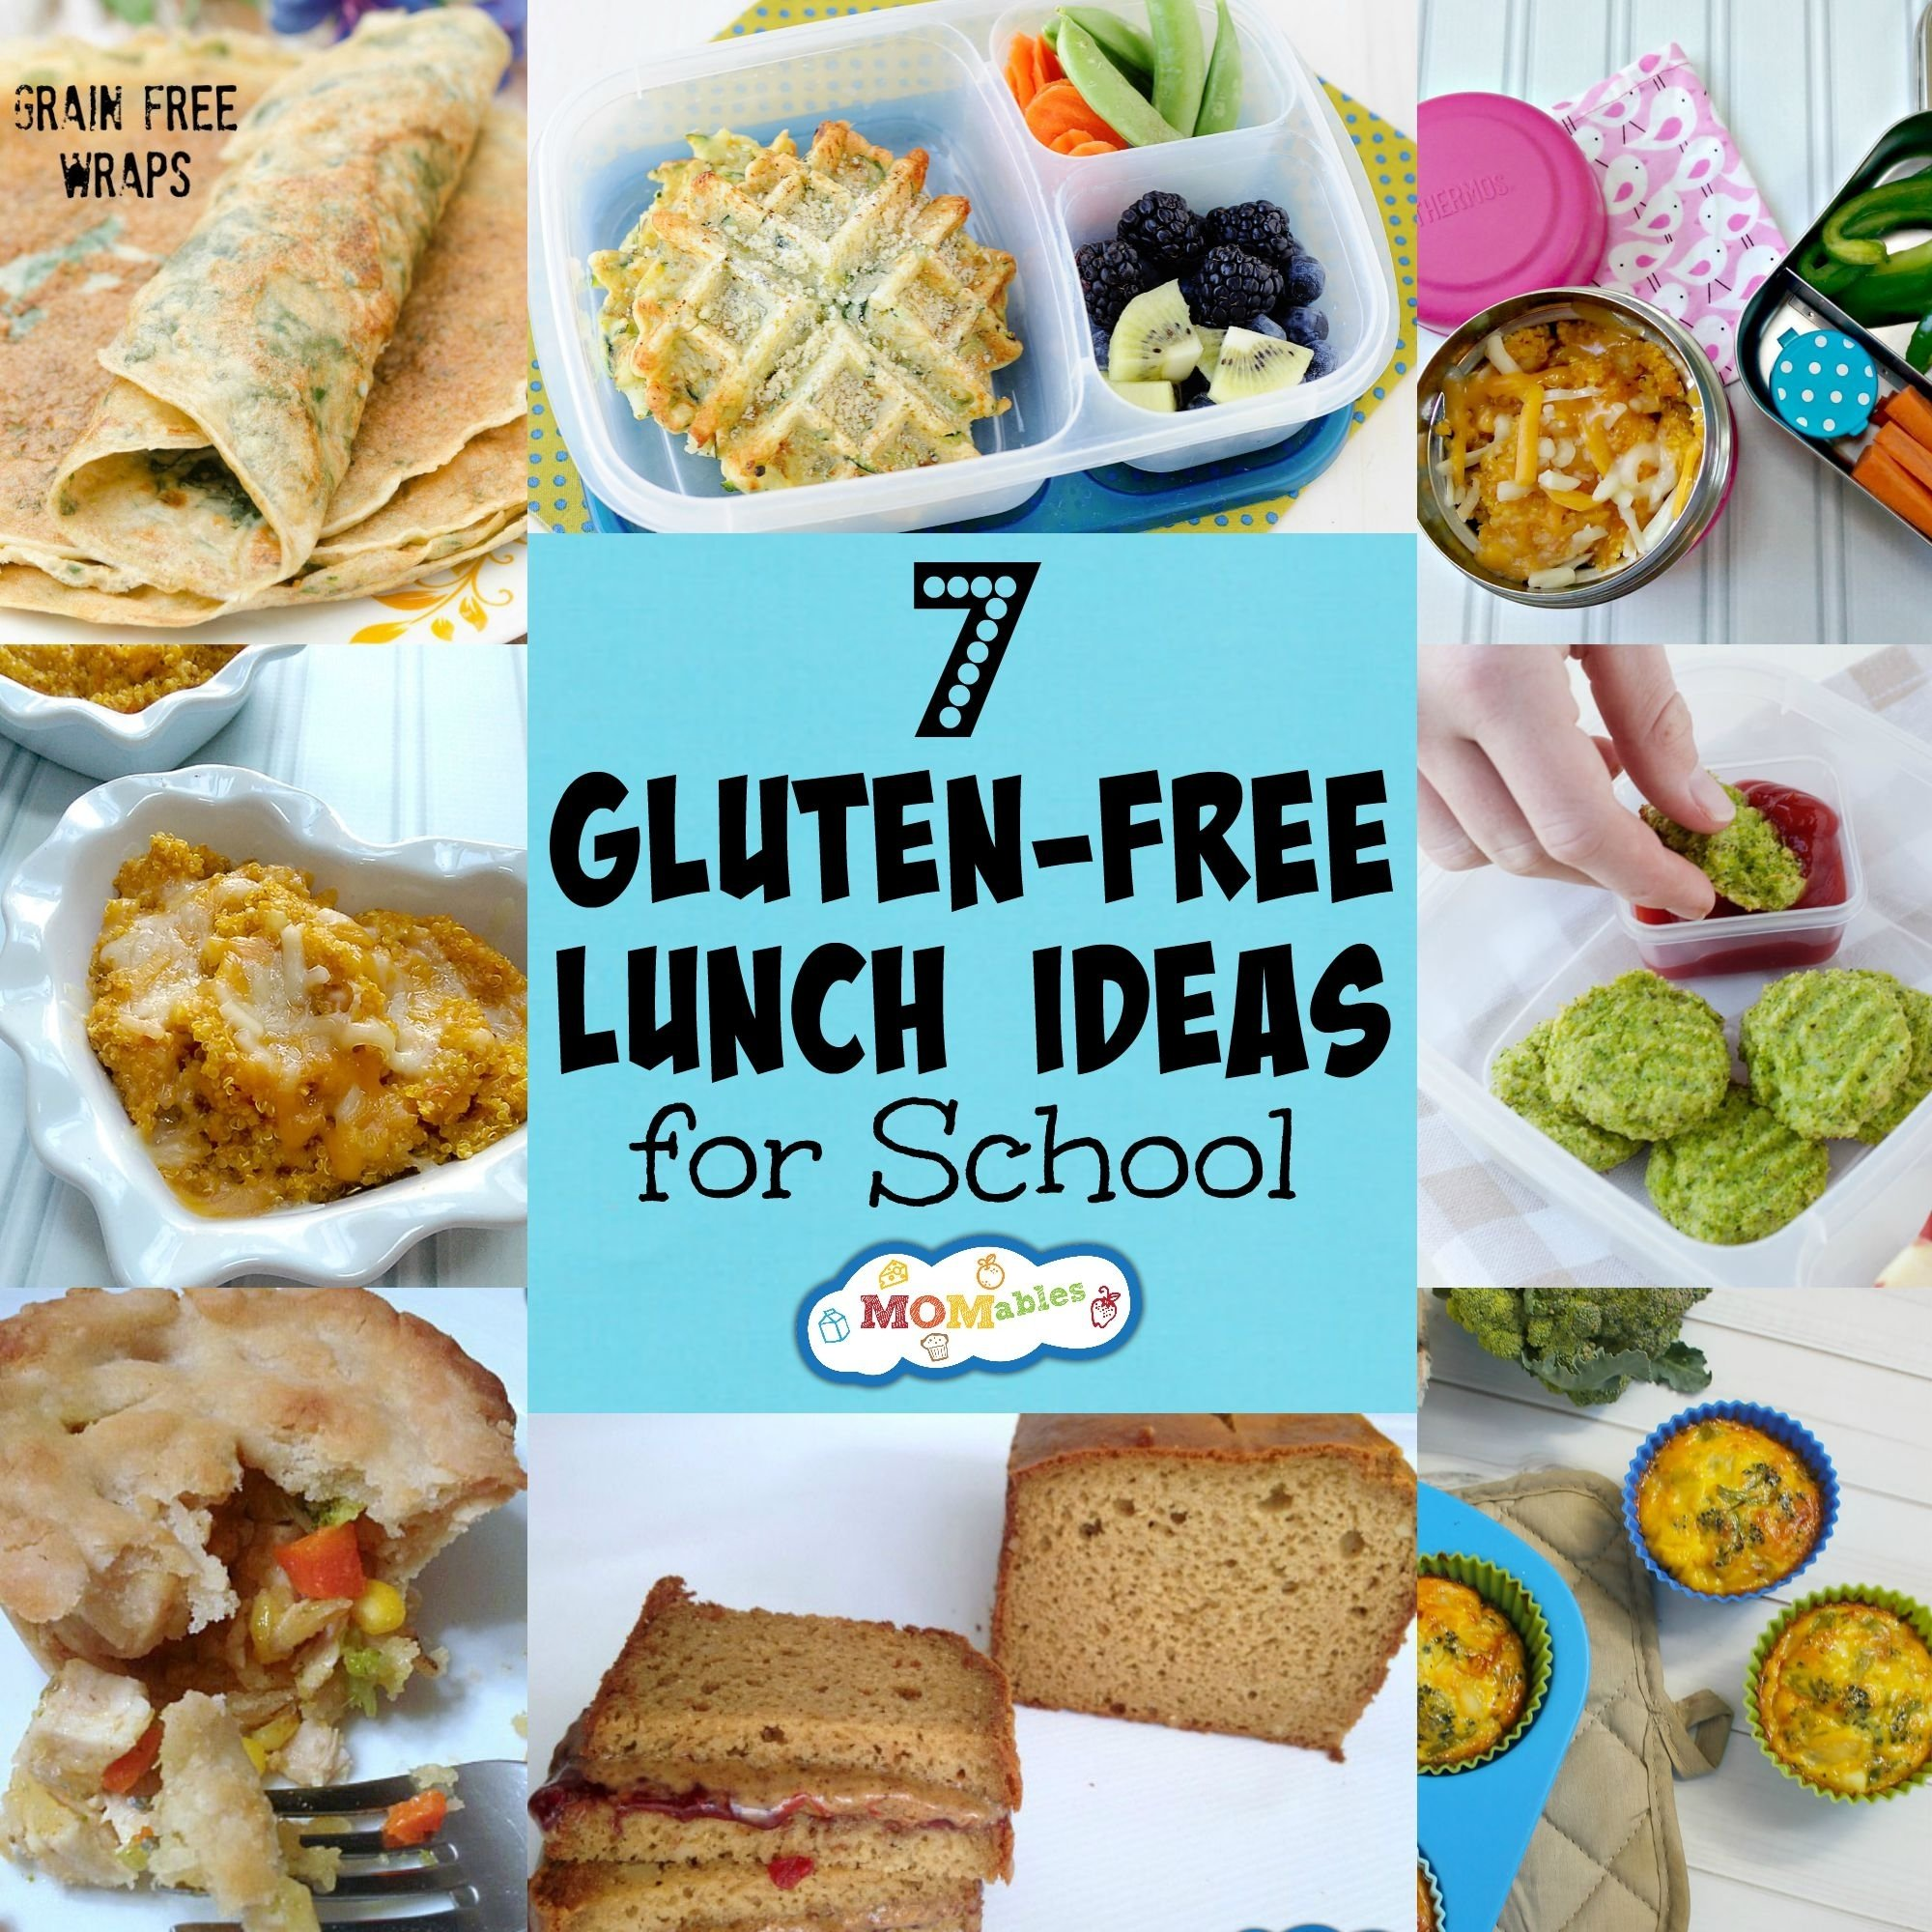 10 Nice Ideas For Kids Lunches For School 7 gluten free lunch ideas for school momables 2 2021